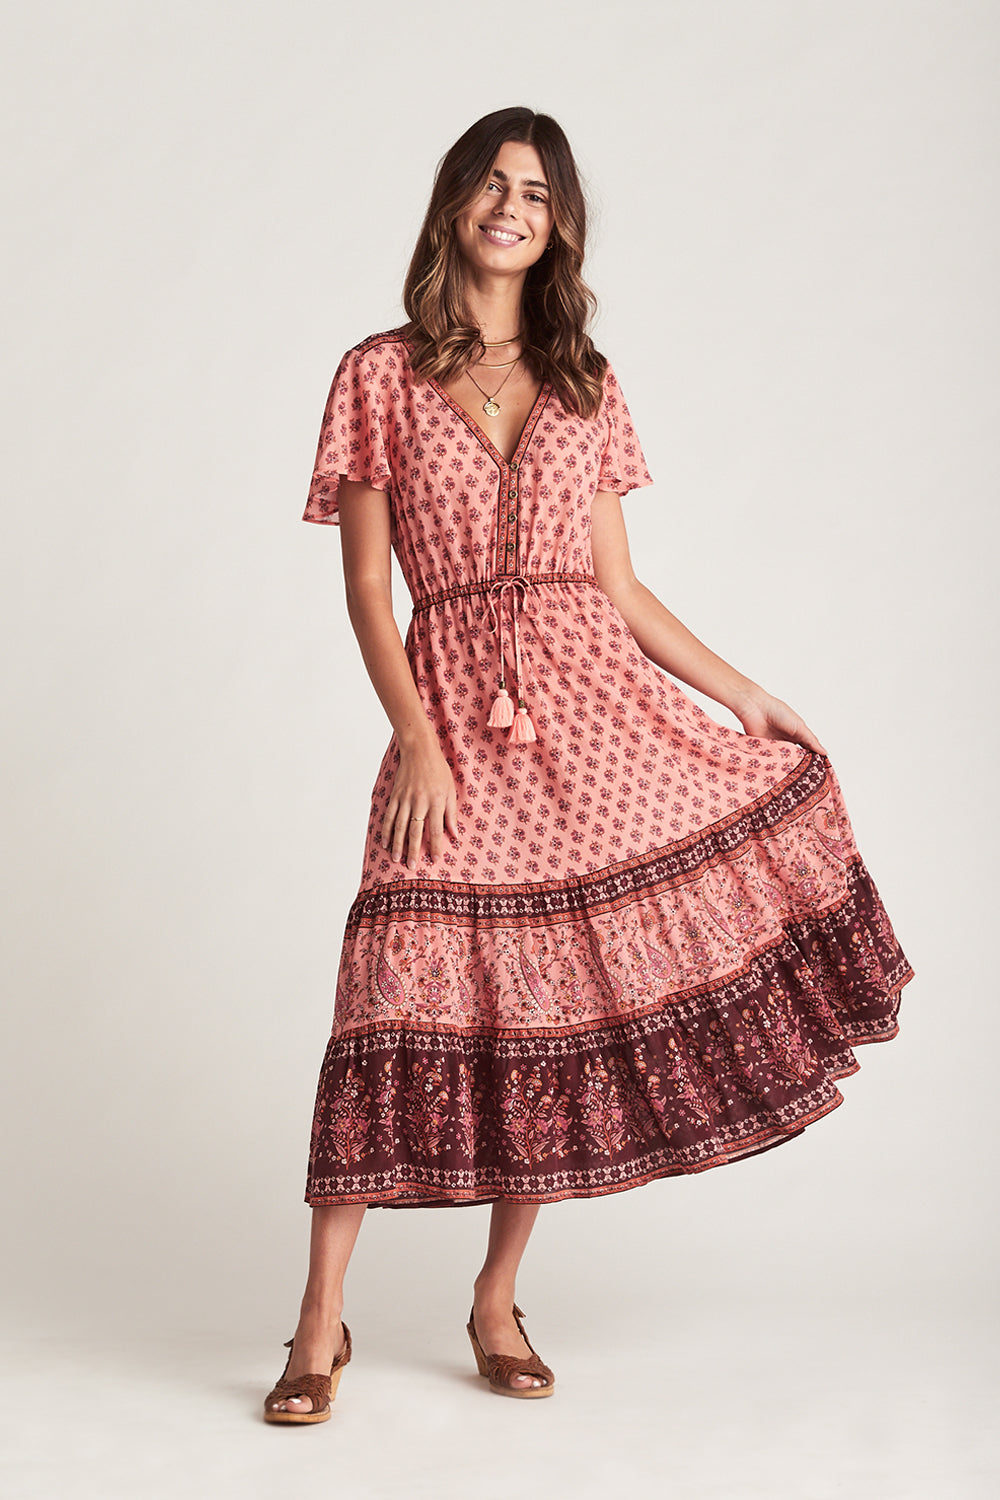 Serafina Sundress in Sweet Cherry